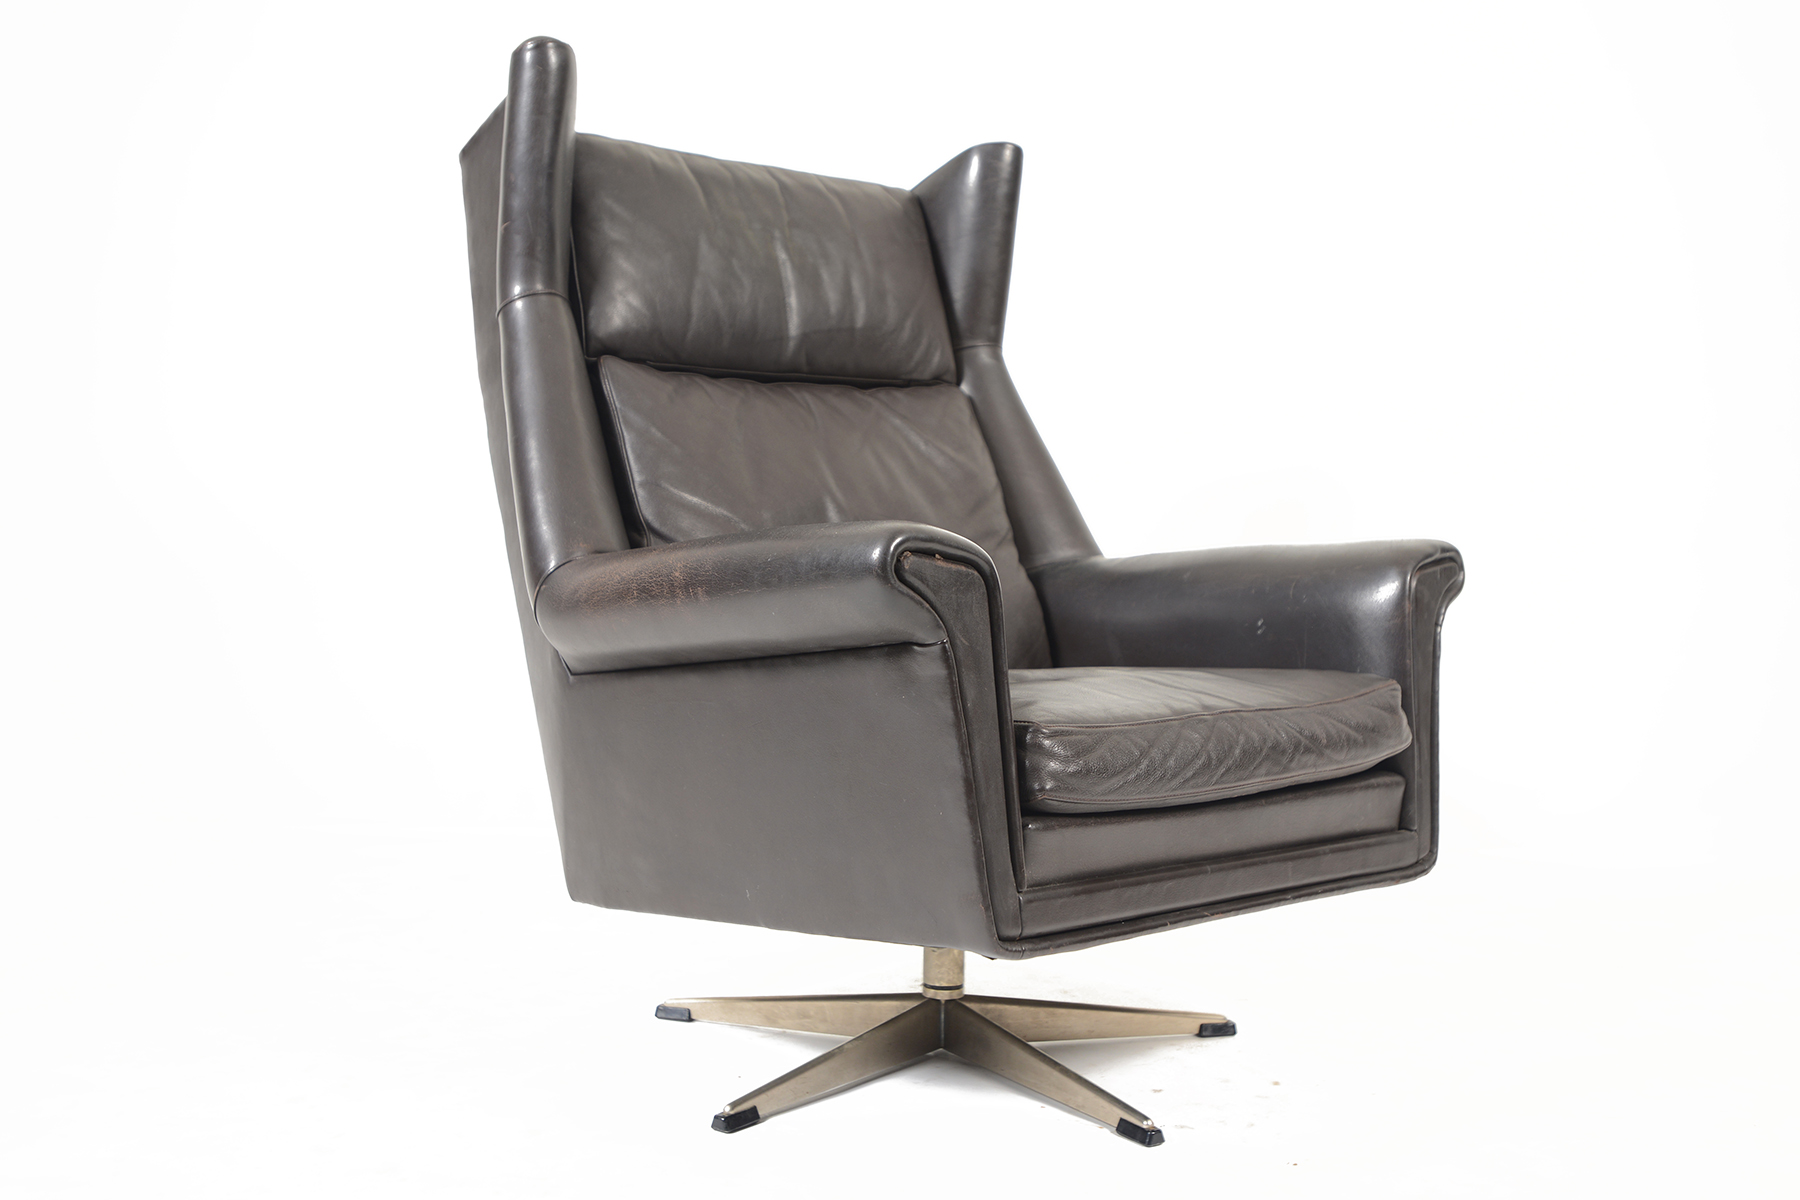 Surprising Danish Modern Black Leather Highback Swivel Lounge Chair Caraccident5 Cool Chair Designs And Ideas Caraccident5Info